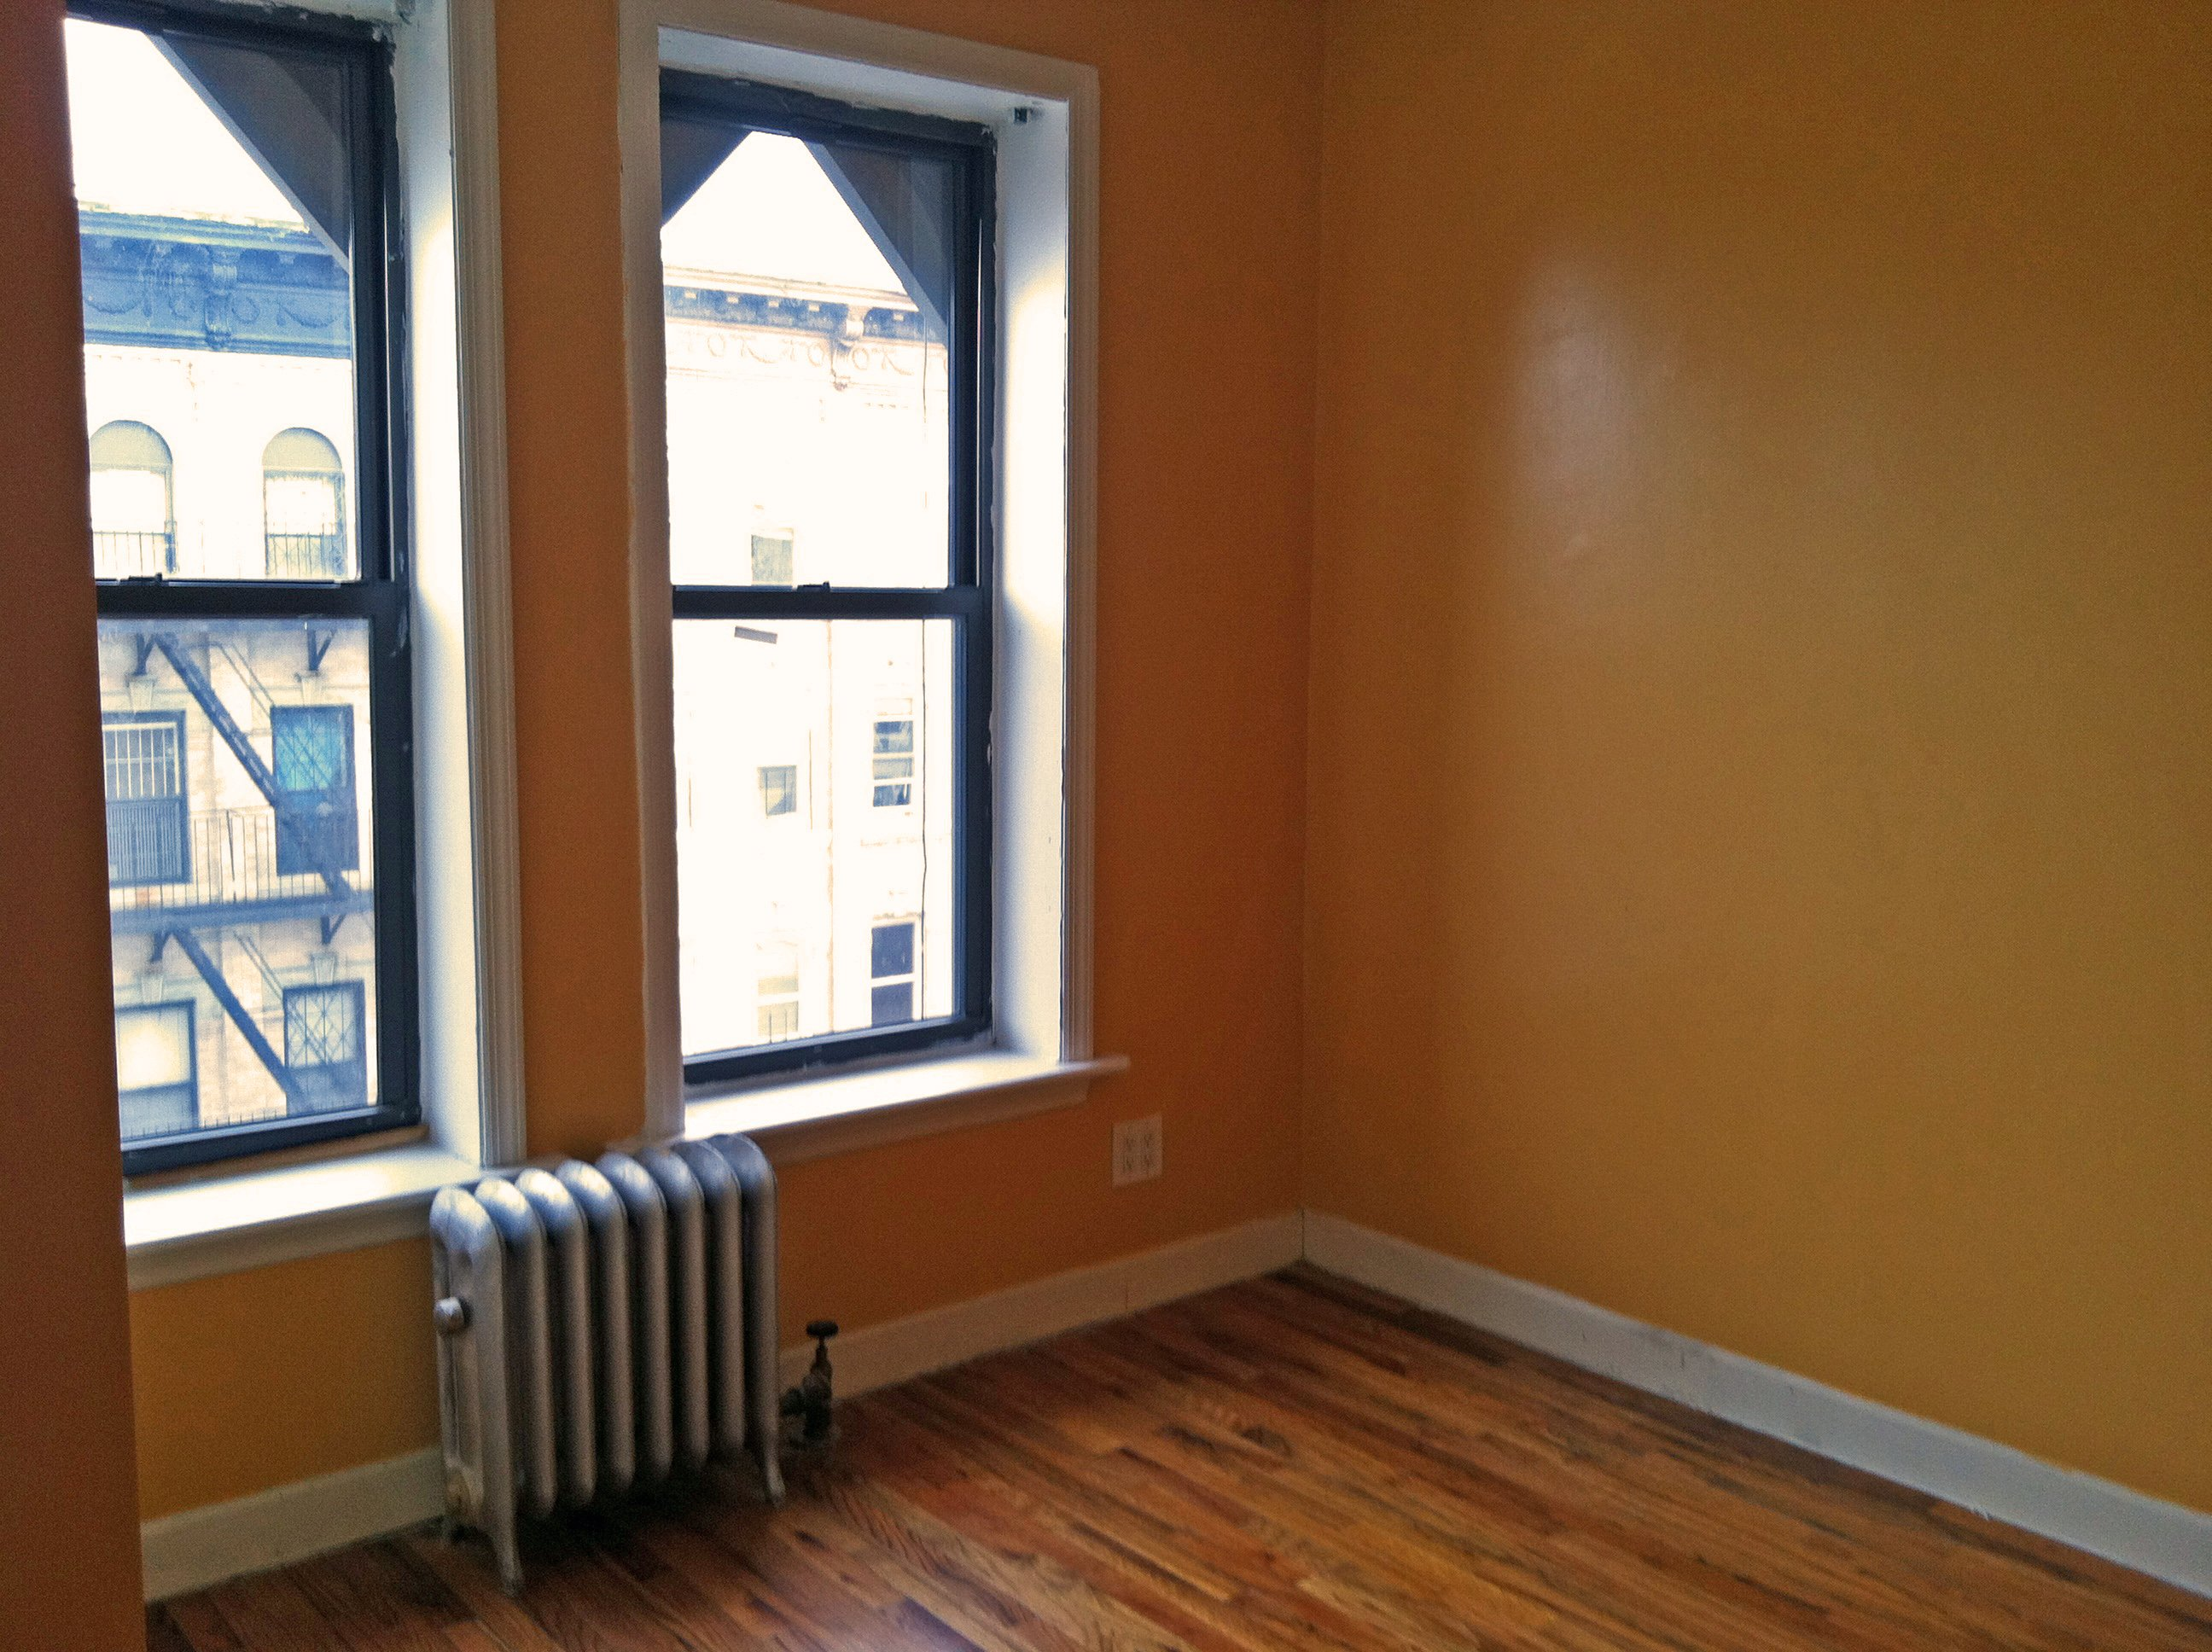 Crown heights 2 bedroom apartment for rent brooklyn crg3120 for Two bedroom apartments in brooklyn ny